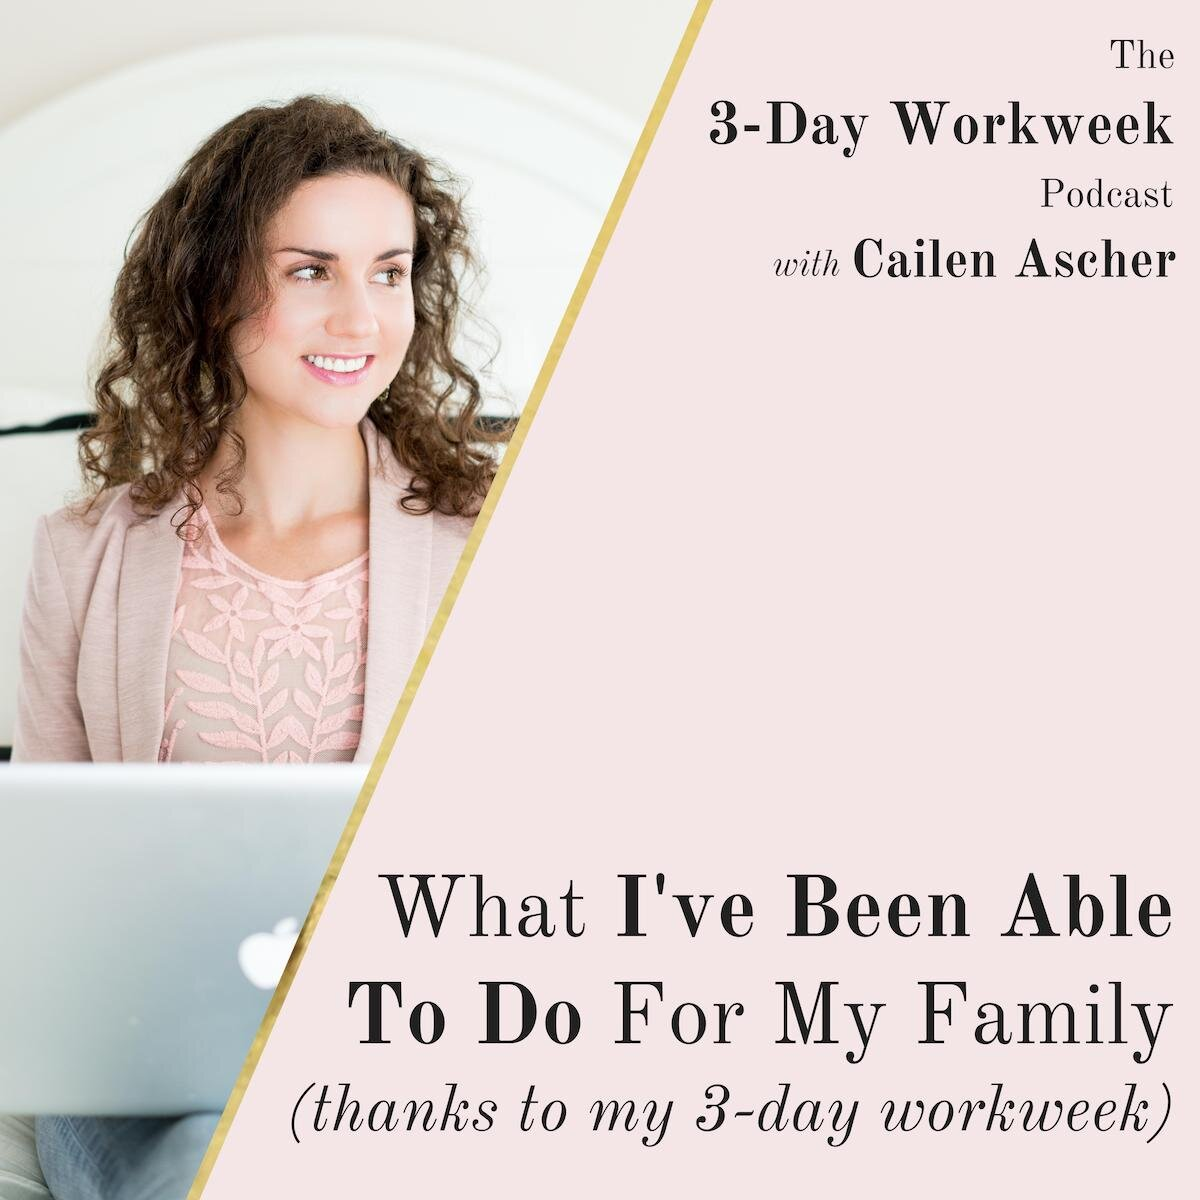 The 3-Day Workweek Podcast with Cailen Ascher - What I've Been Able To Do For My Family.jpg